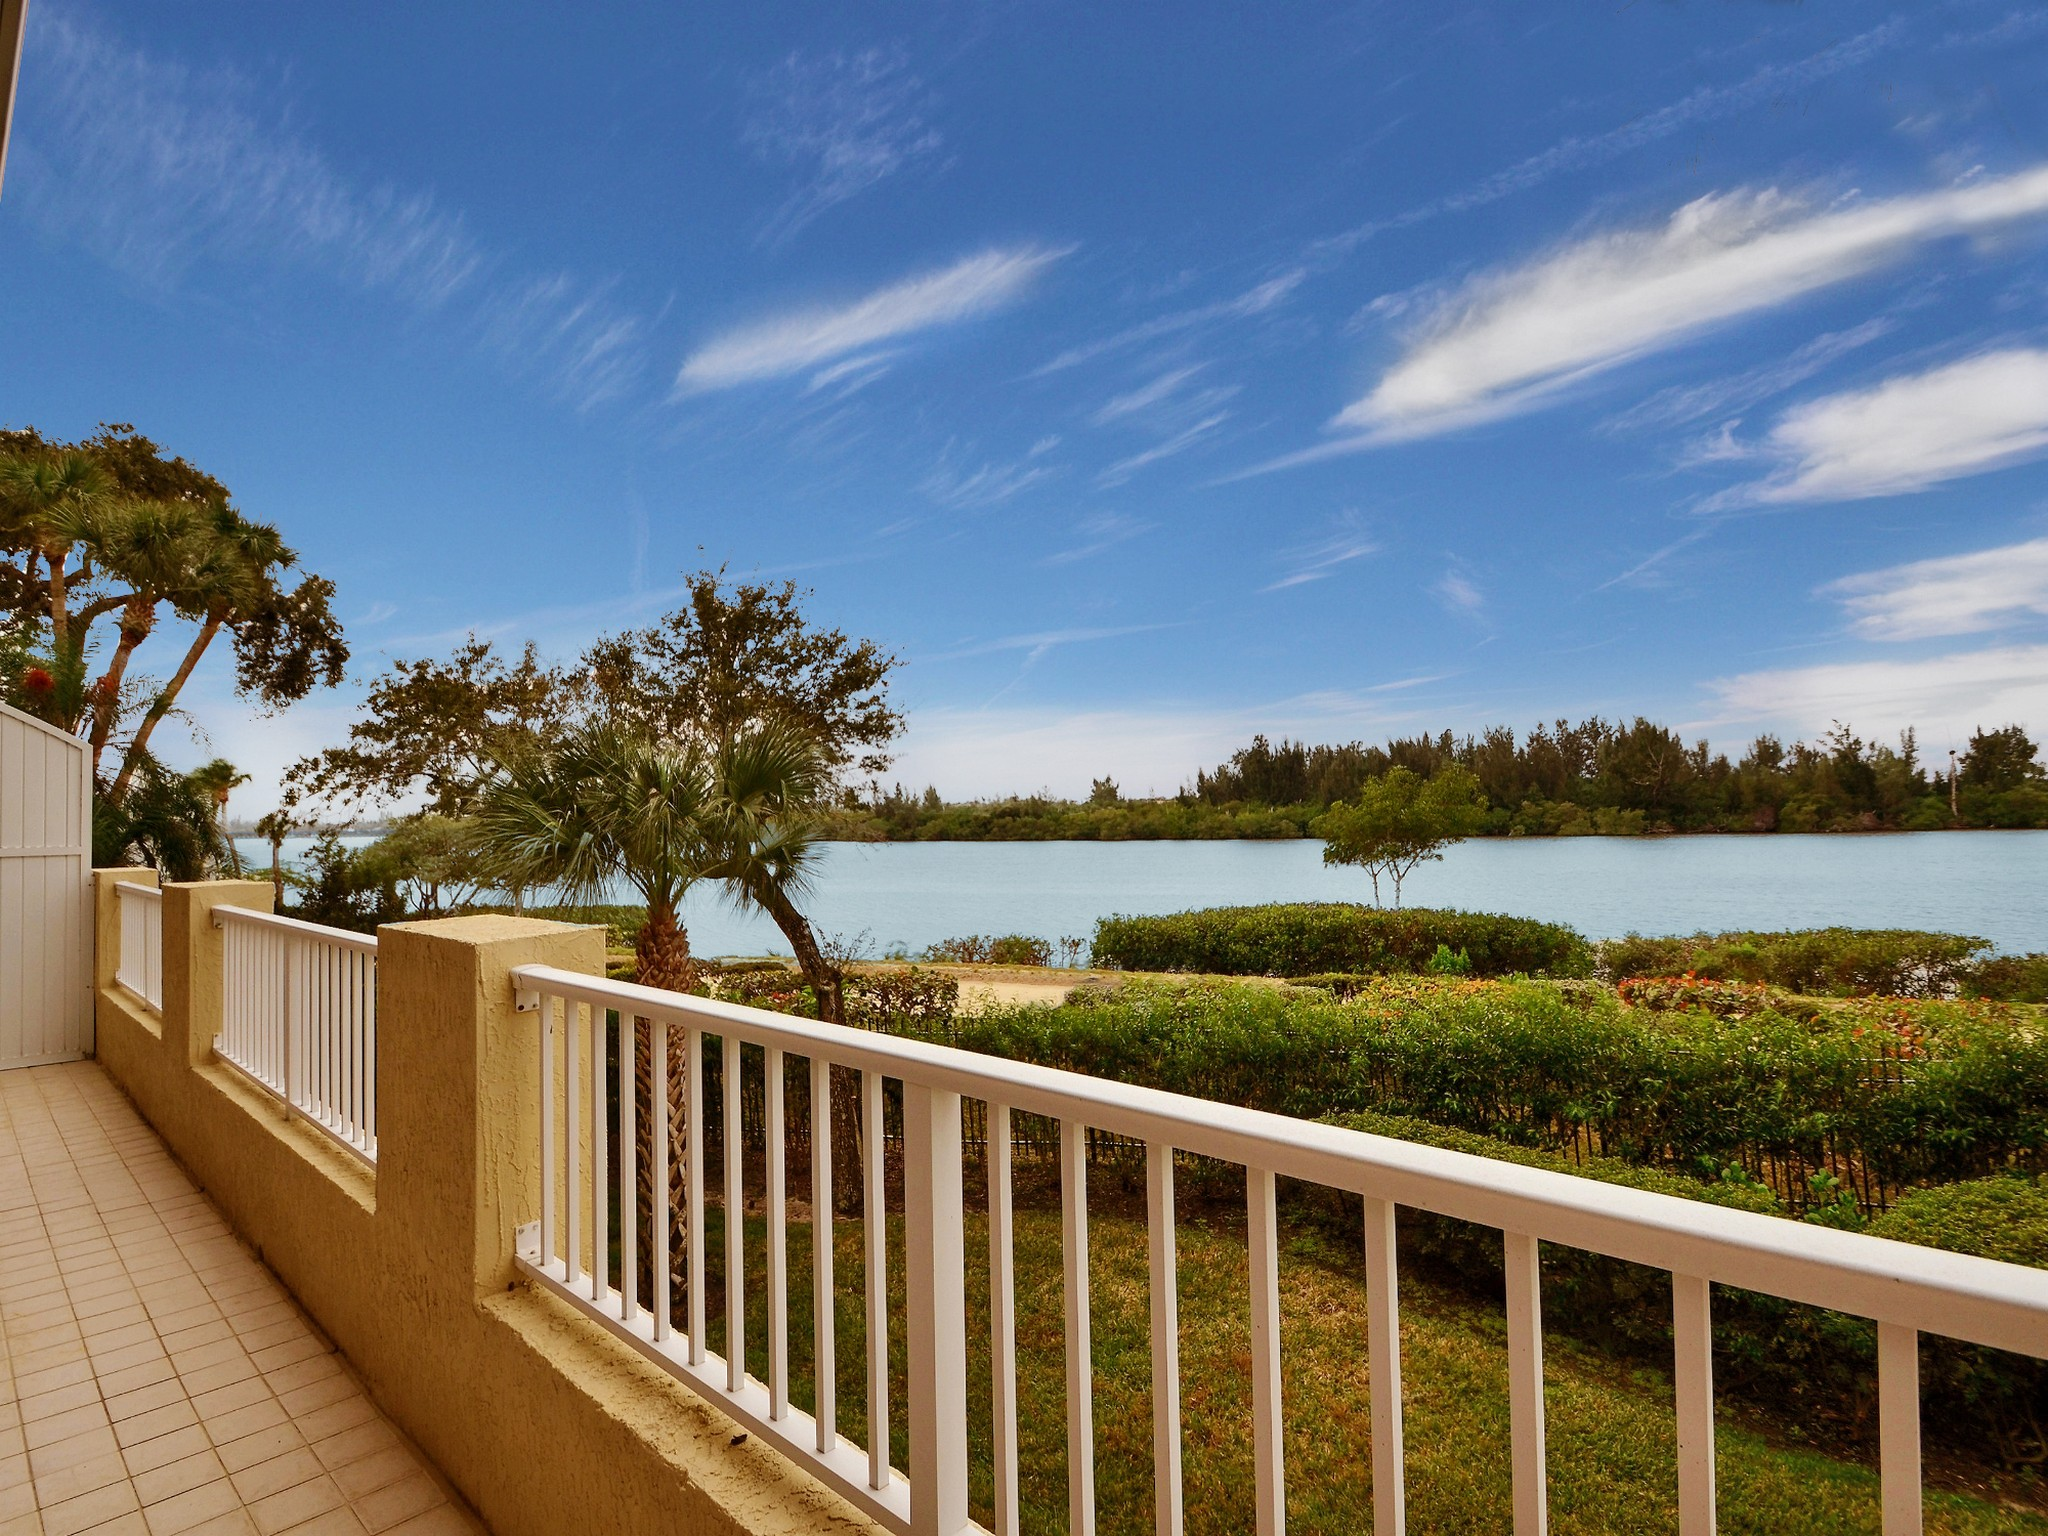 Condominio por un Venta en Extraordinary Riverfront Condo in Sea Oaks! 8865 W Orchid Island Circle #203 Vero Beach, Florida 32963 Estados Unidos